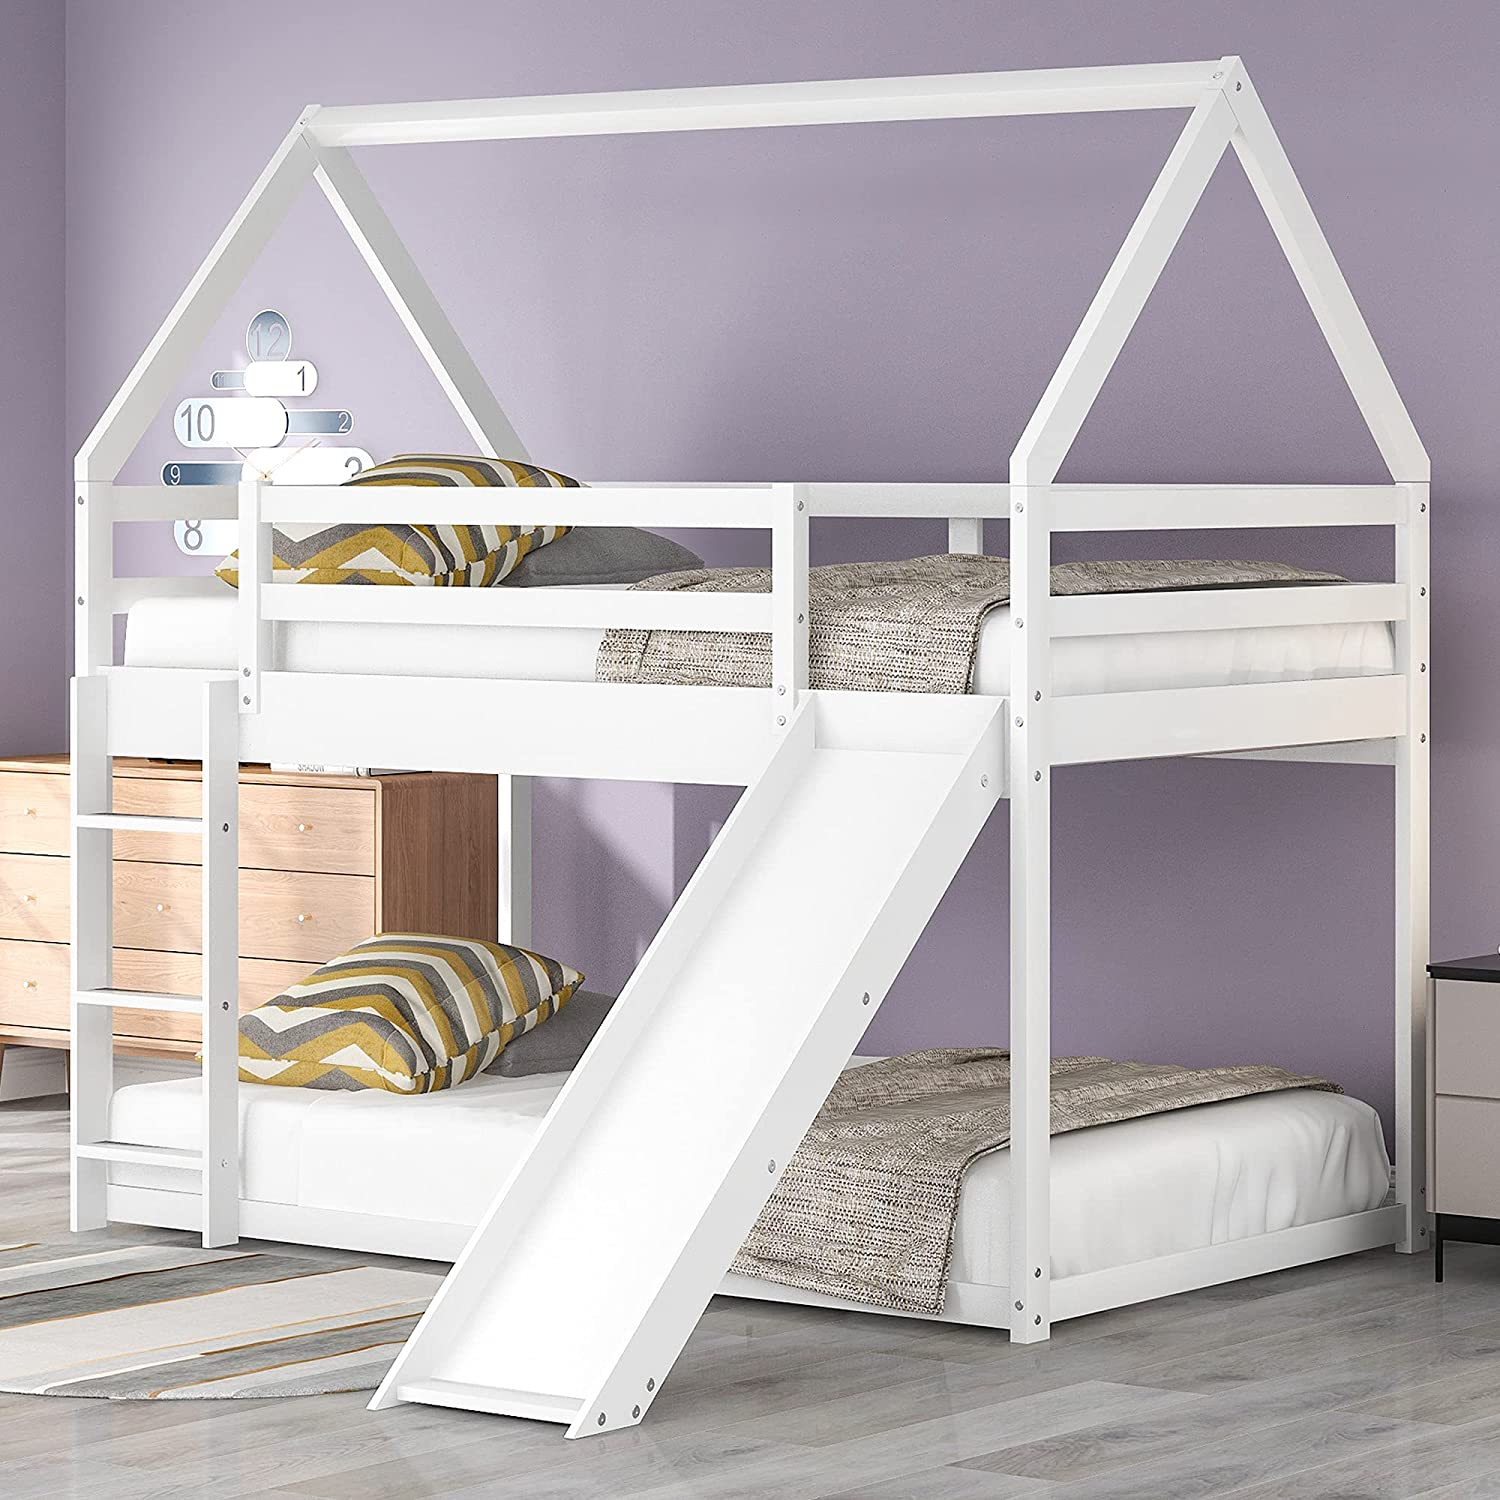 P PURLOVE Twin Over House Dealing full price reduction Wood Slide Limited time sale Bunk Bed with